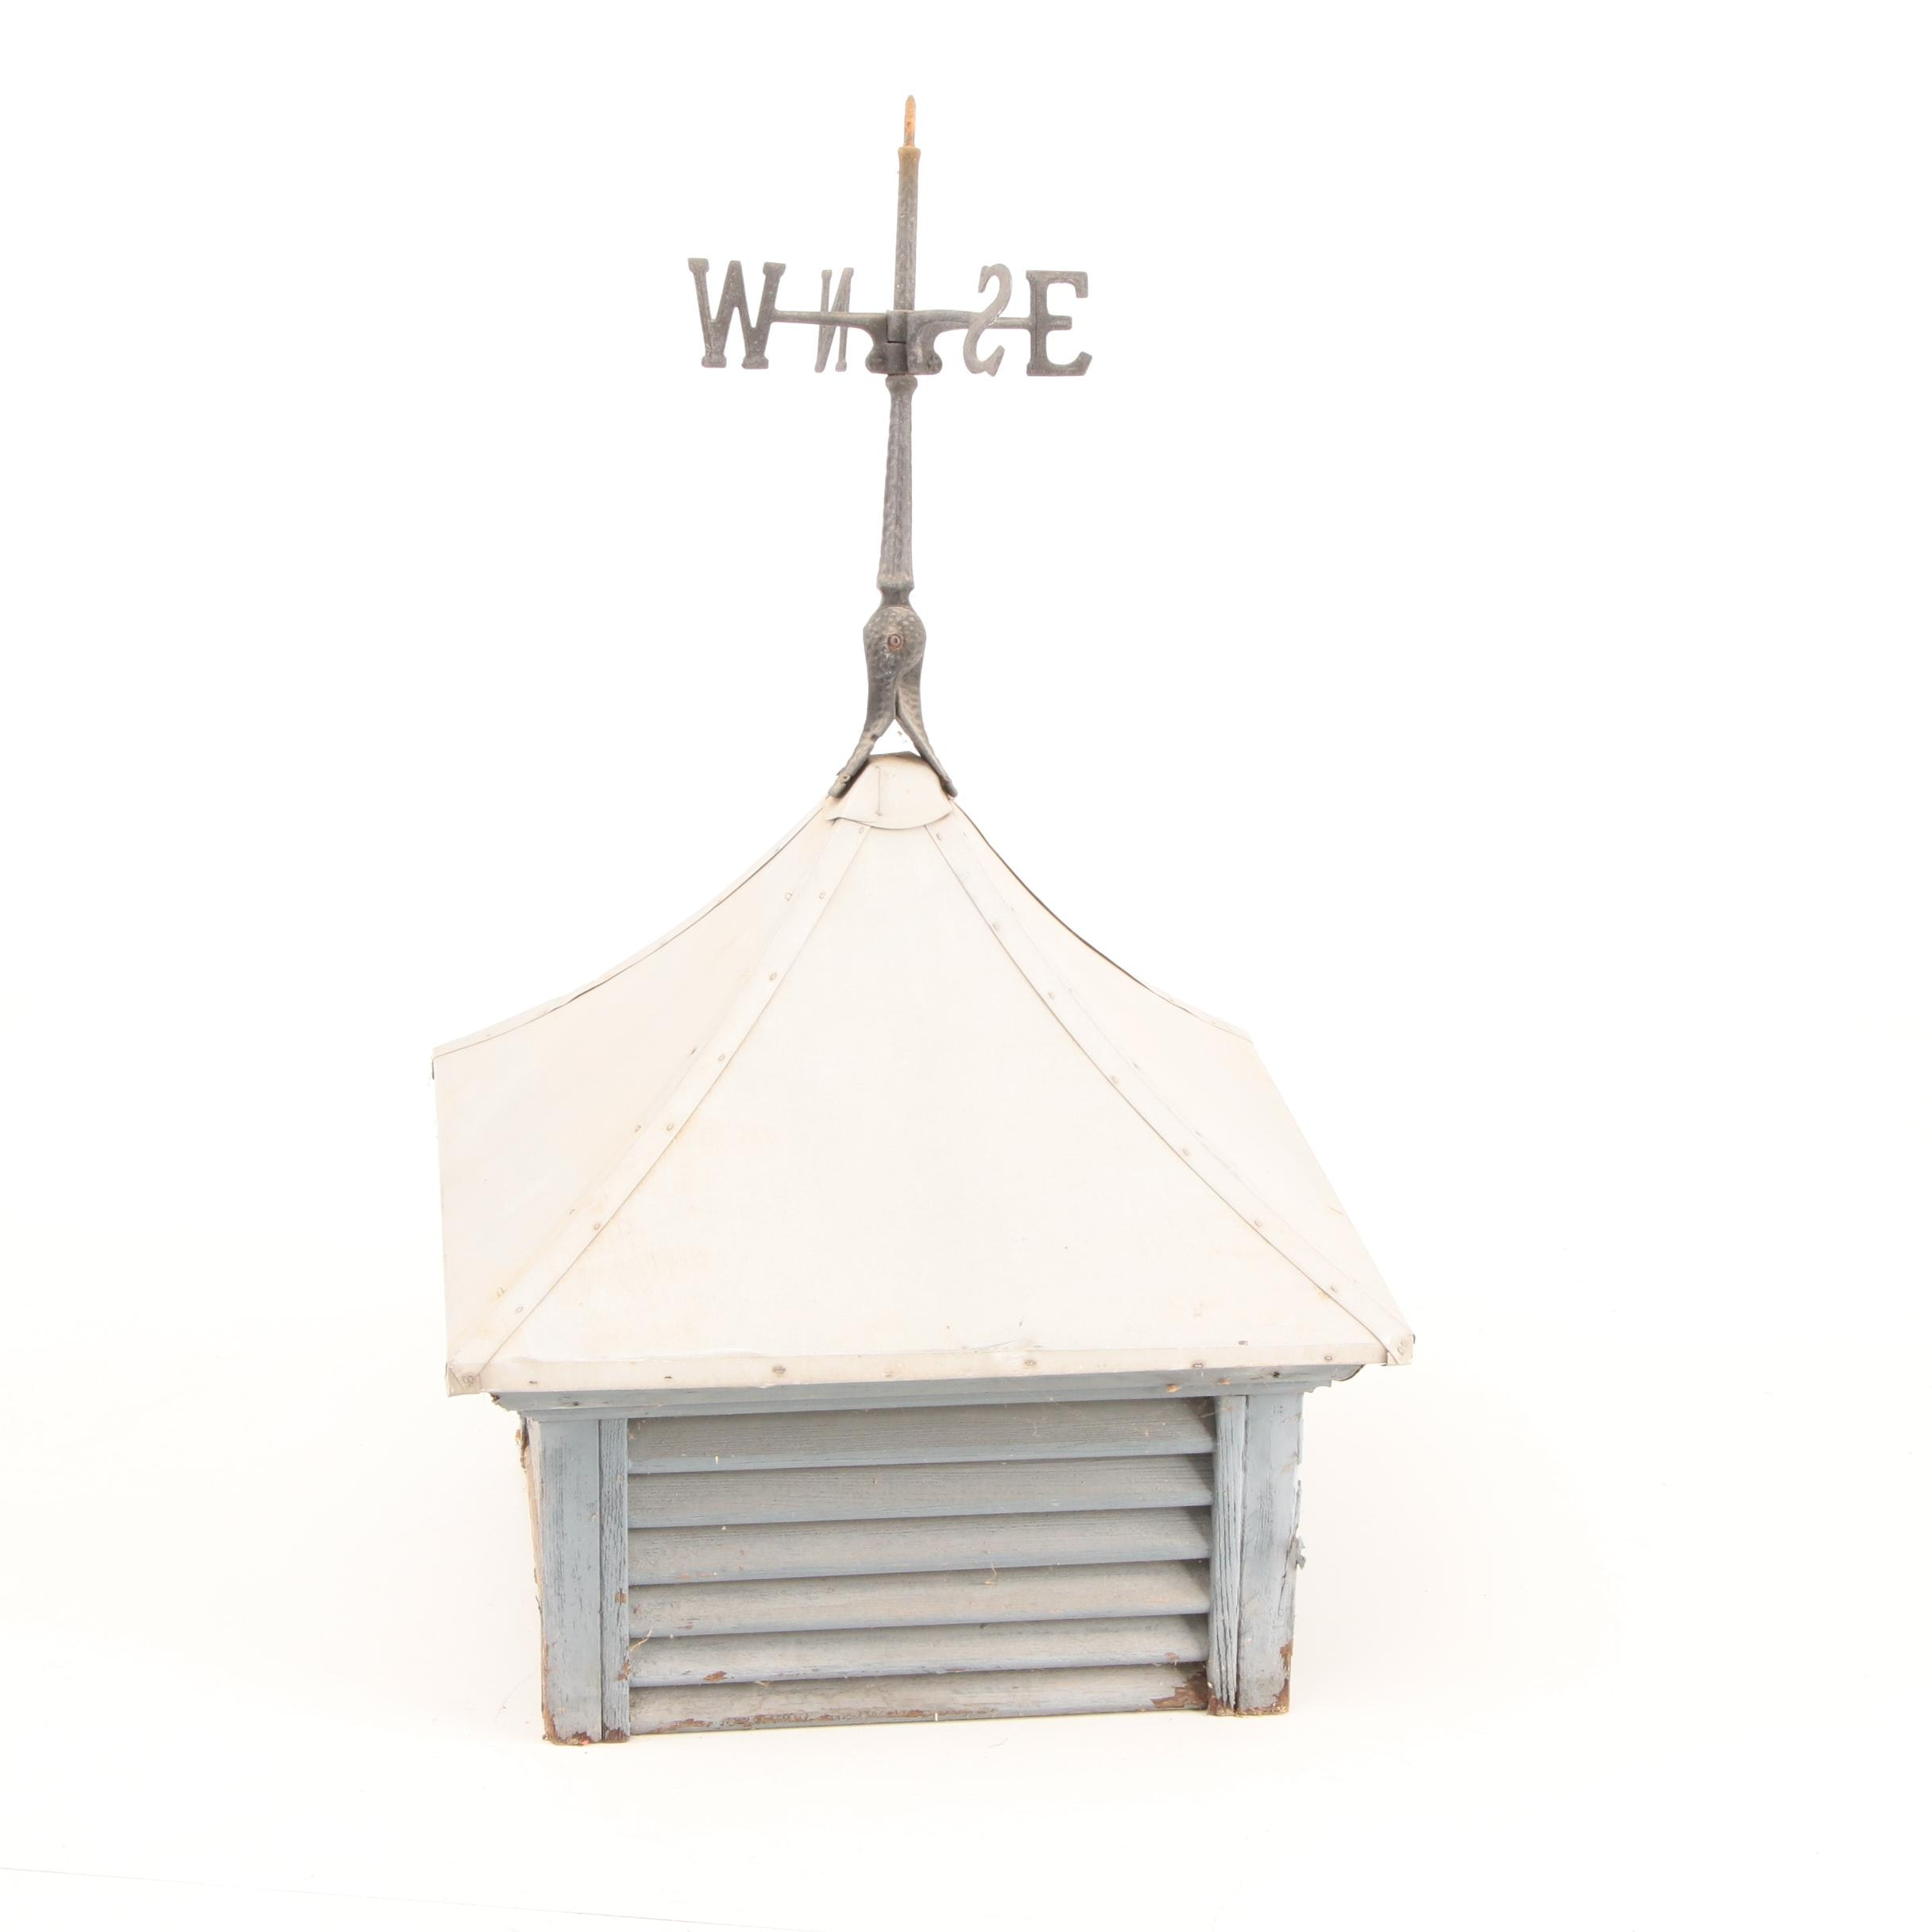 Vintage Cupola with Weathervane